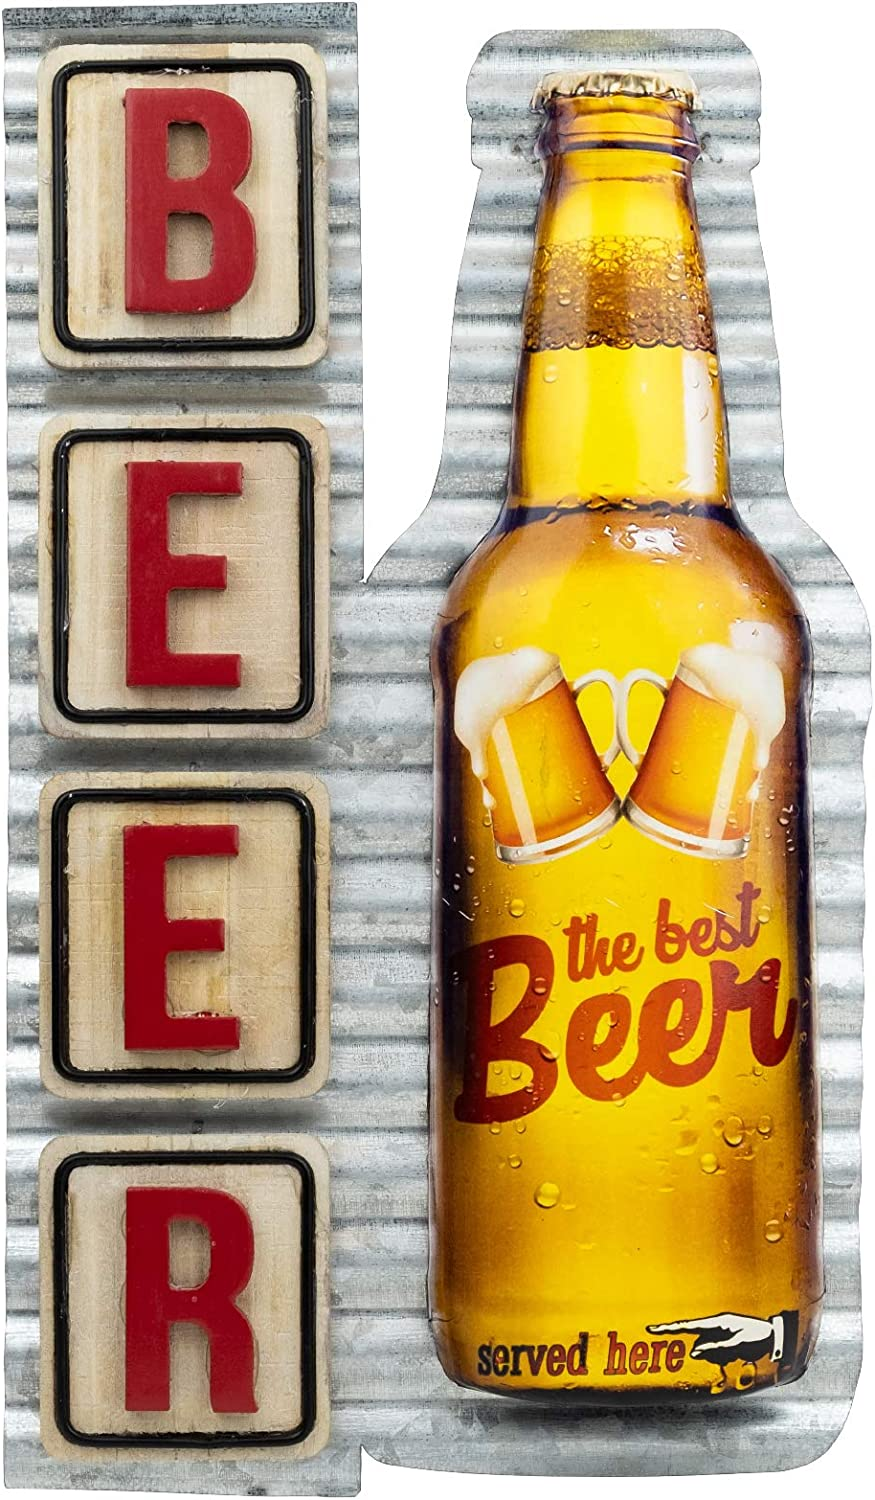 "Excello Global Products Vintage Metal Beer Signs Tin Retro Wall Wood Iron Plaque for Cafe Club Art Signs Poster Home Man Cave Decor Vintage Bar Decoration 8""x13.5"" Inches"